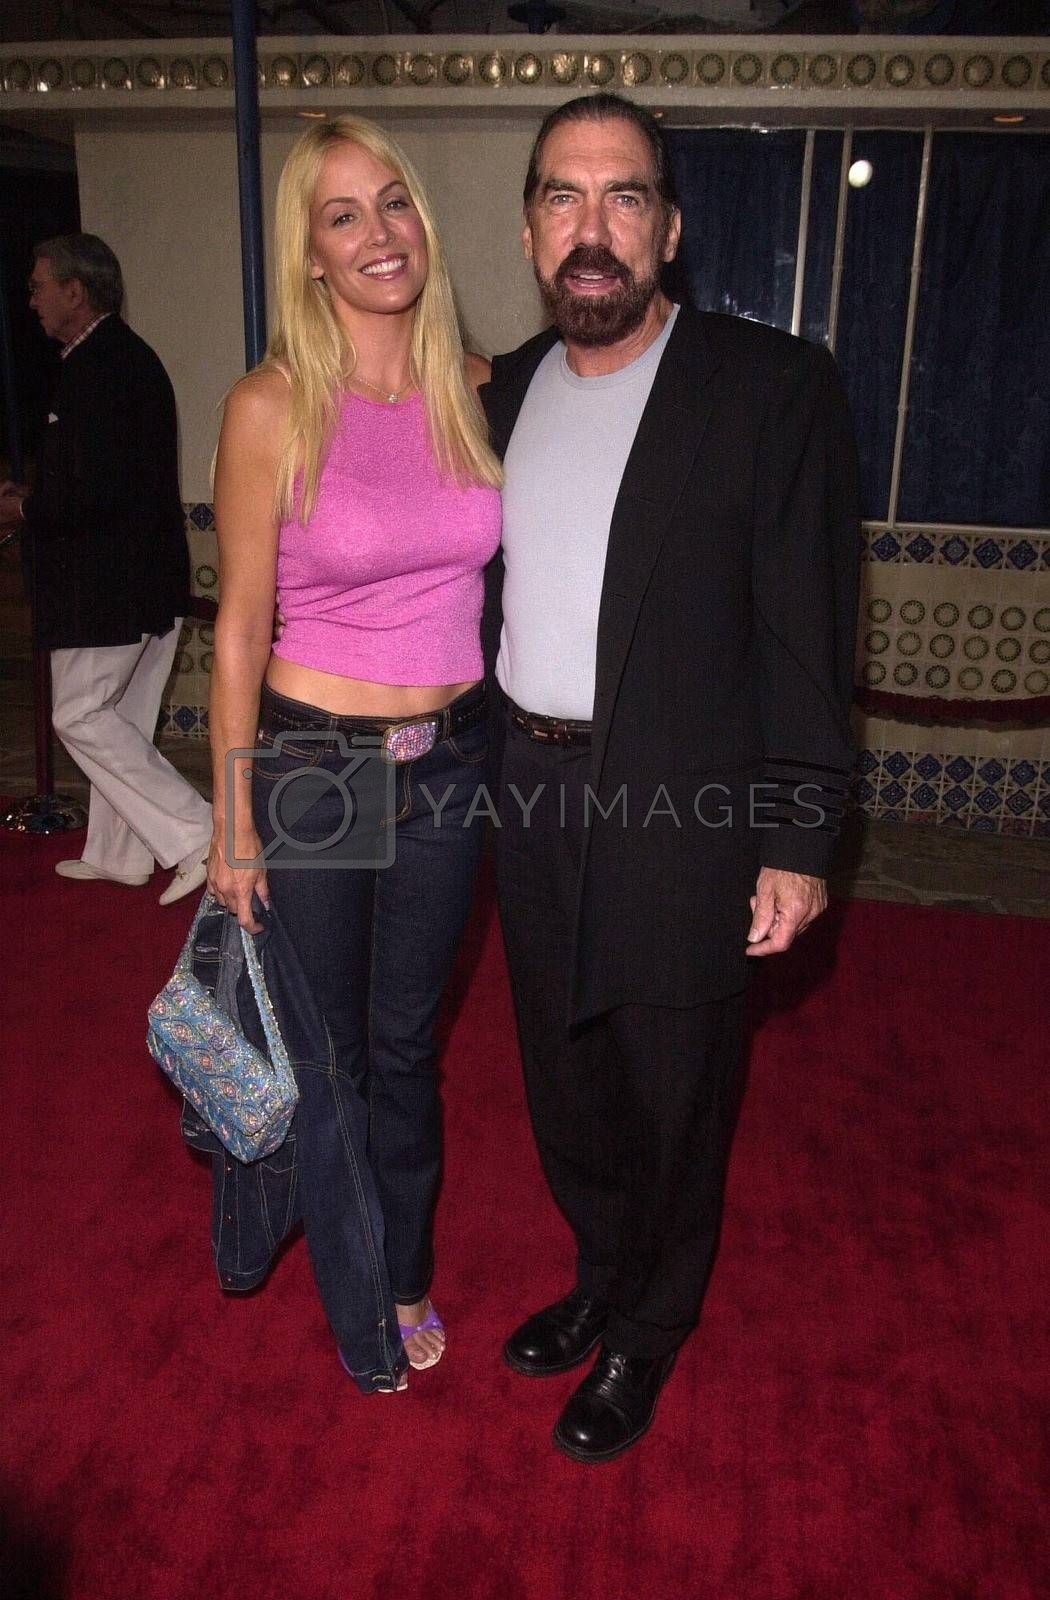 """Paul Mitchell and Wife at the premiere of """"Space Cowboys"""" in Westwood. 08-01-00"""